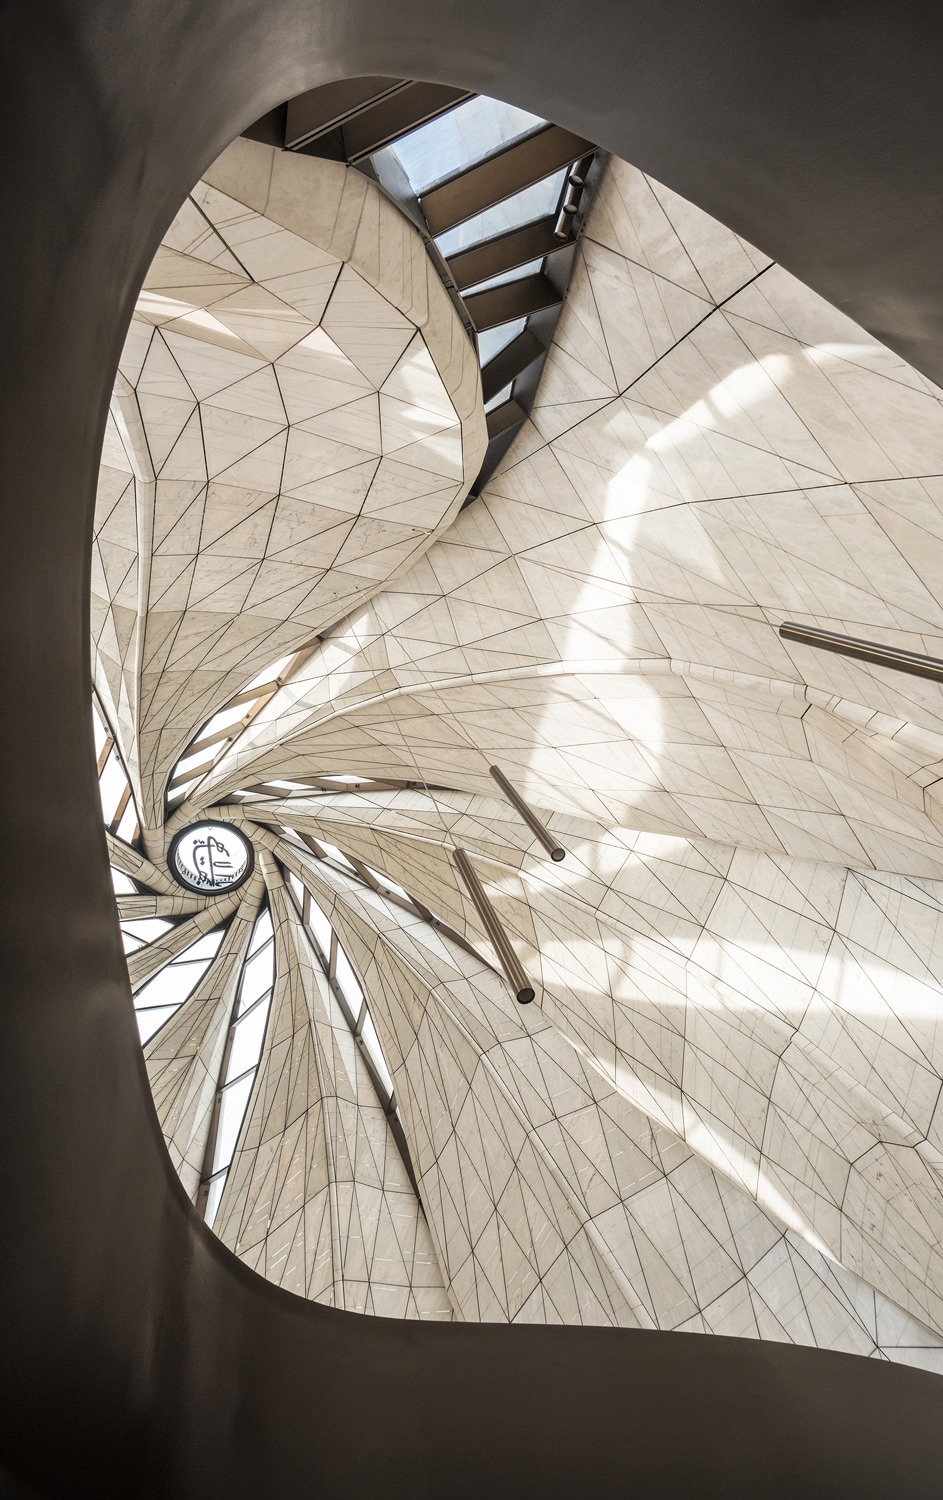 View looking up at Oculus